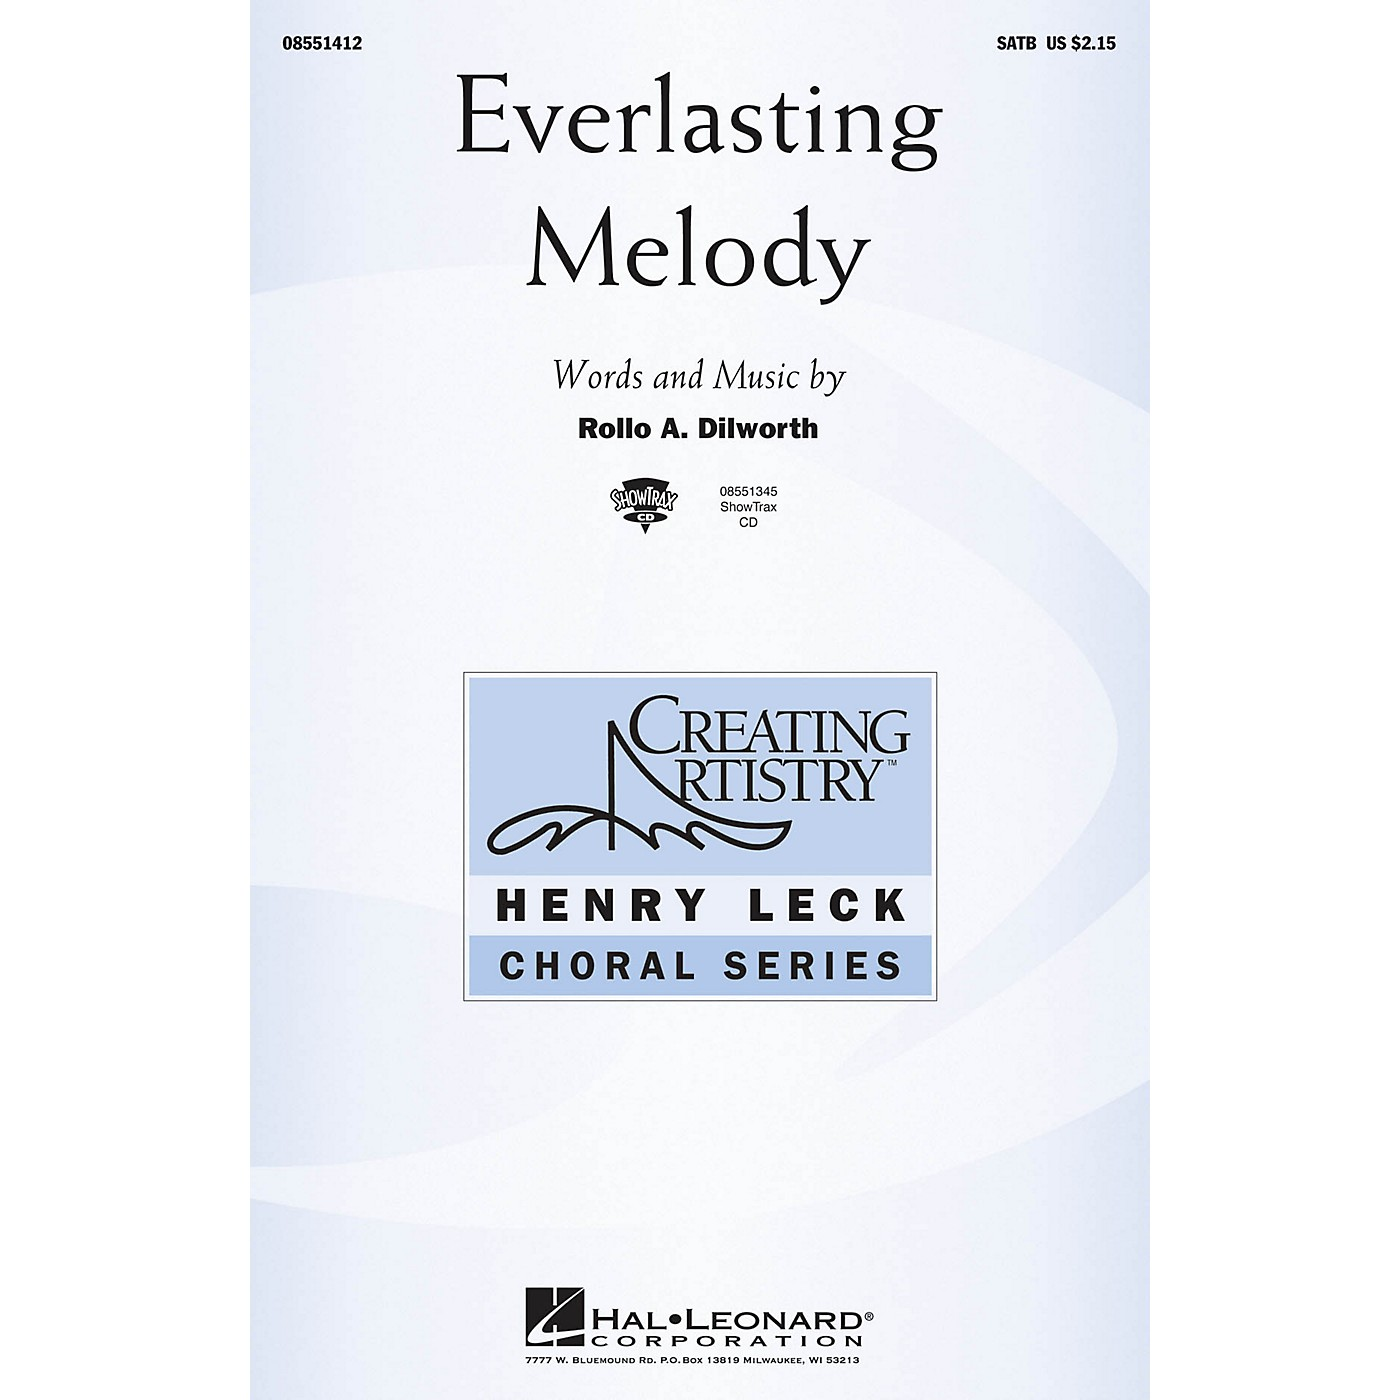 Hal Leonard Everlasting Melody SATB composed by Rollo Dilworth thumbnail